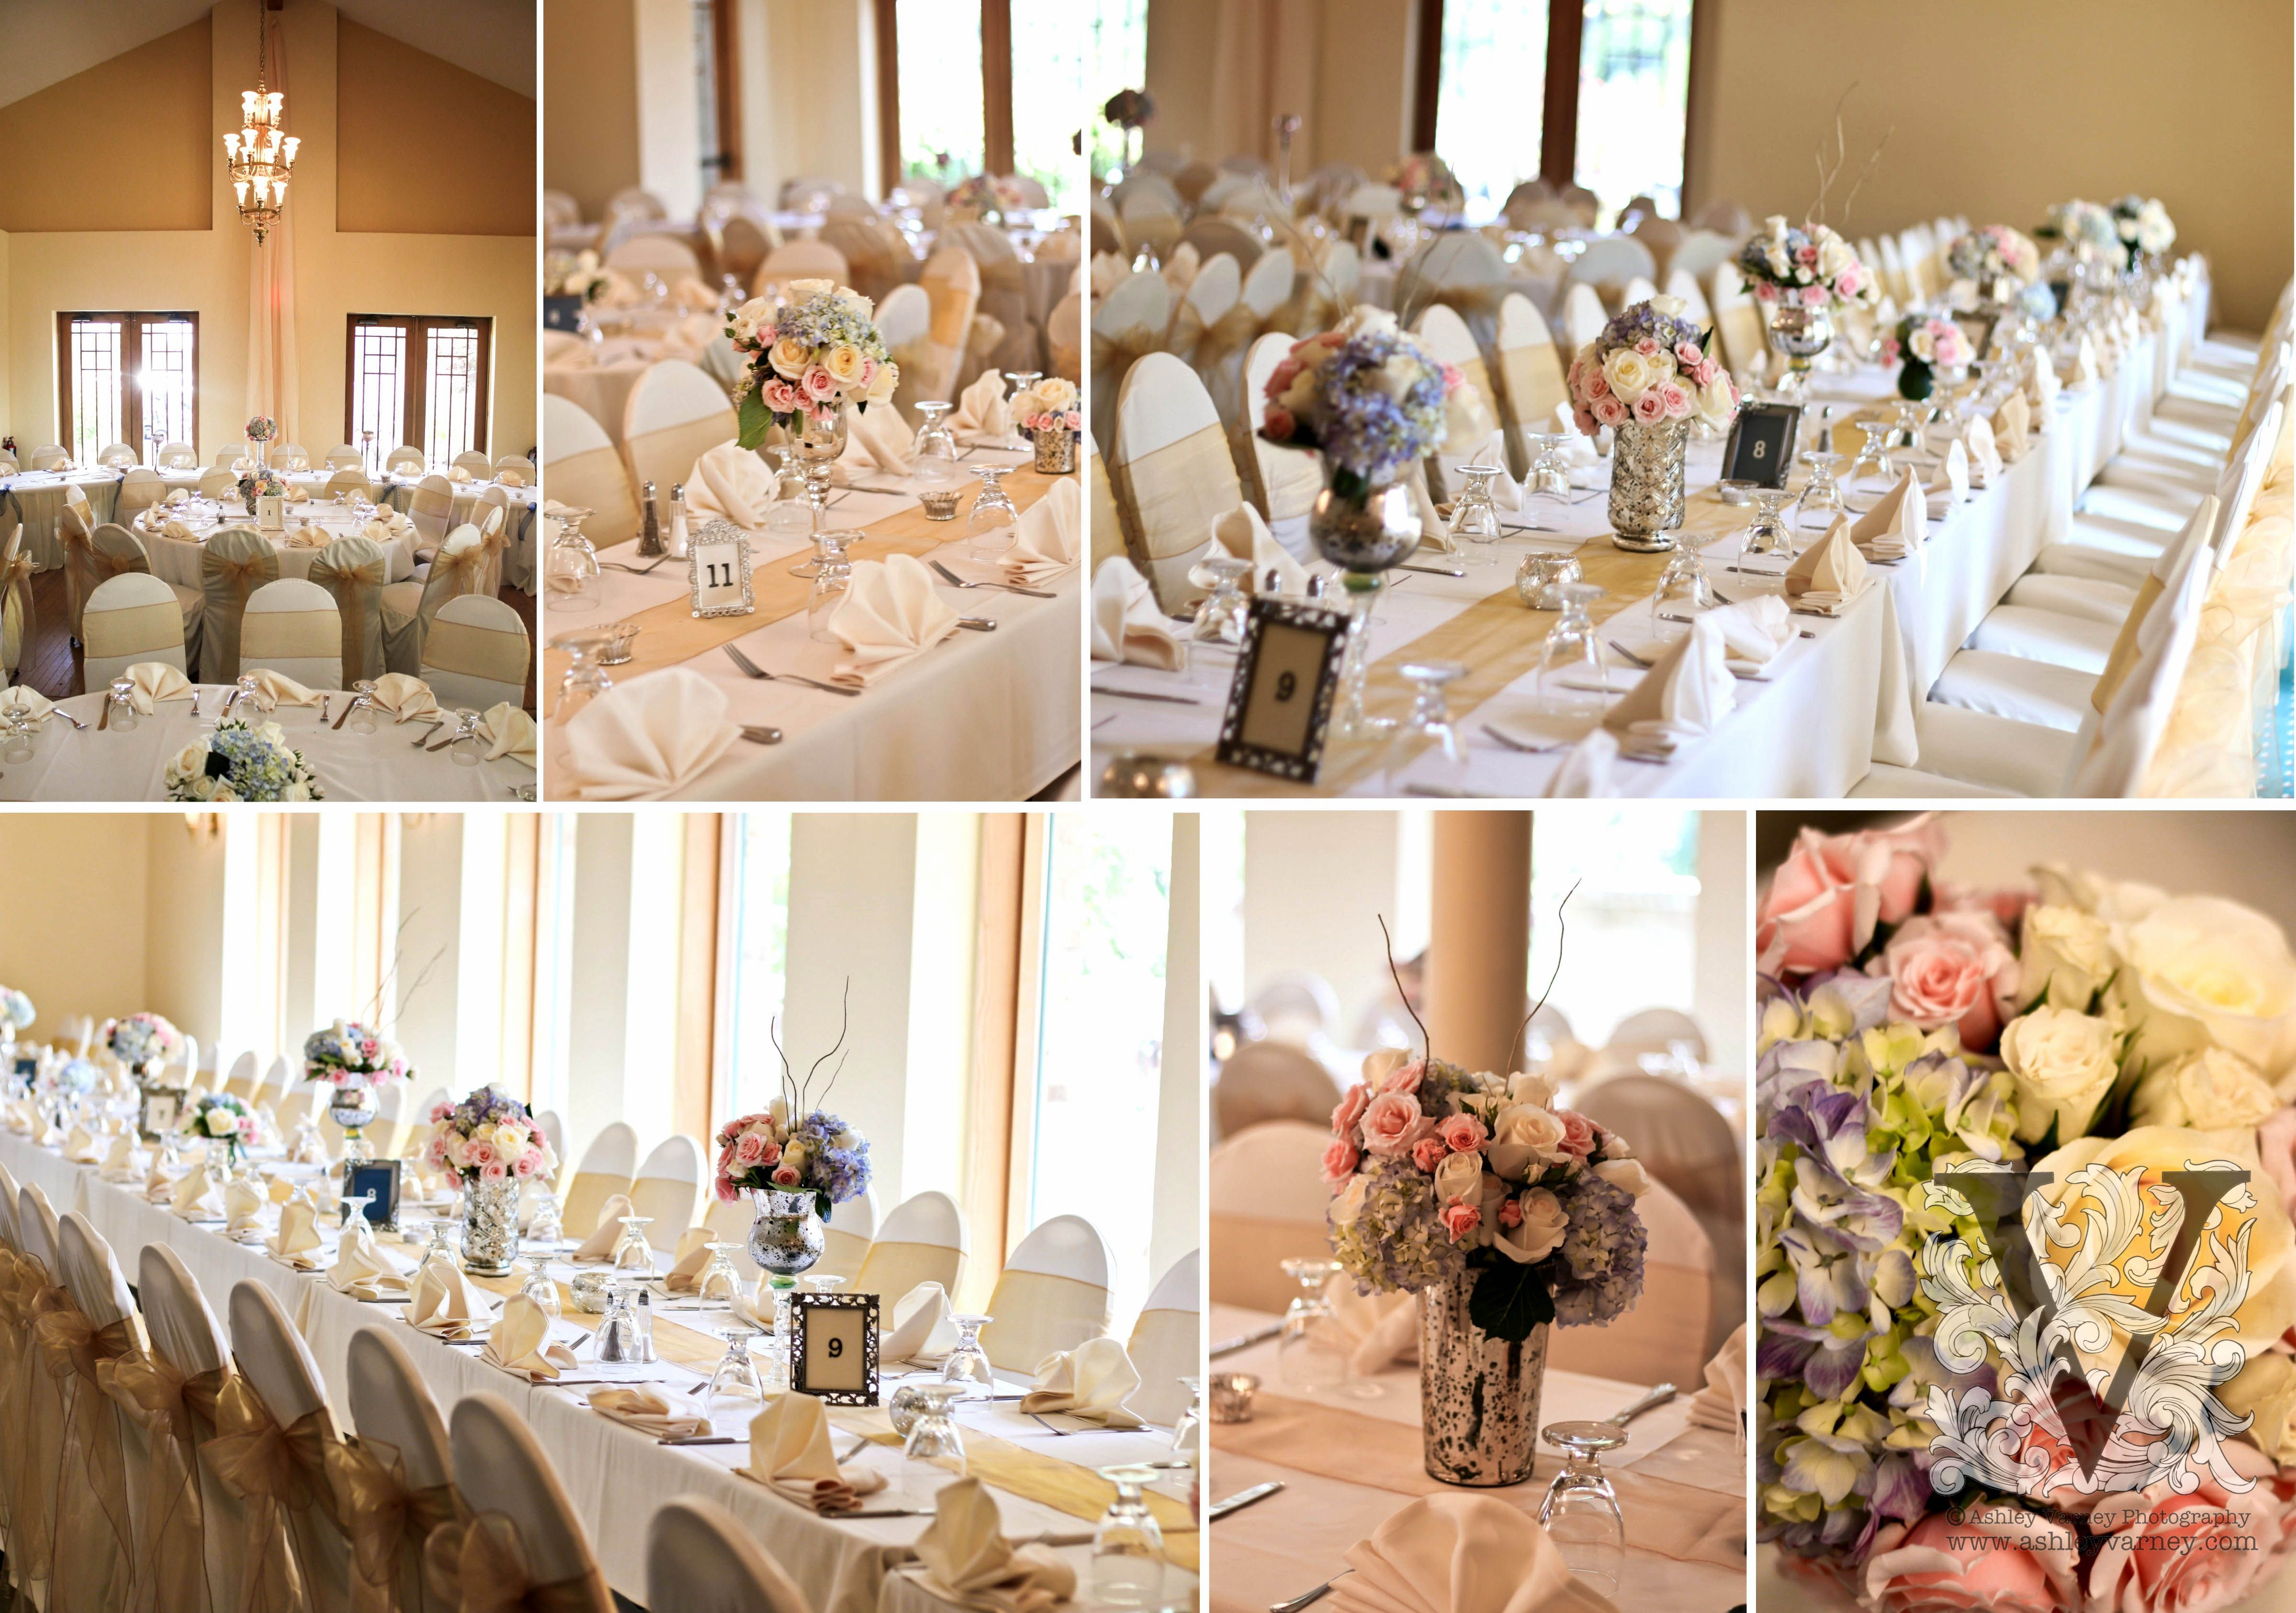 Pin On Wedding Pictures By Ashley Varney